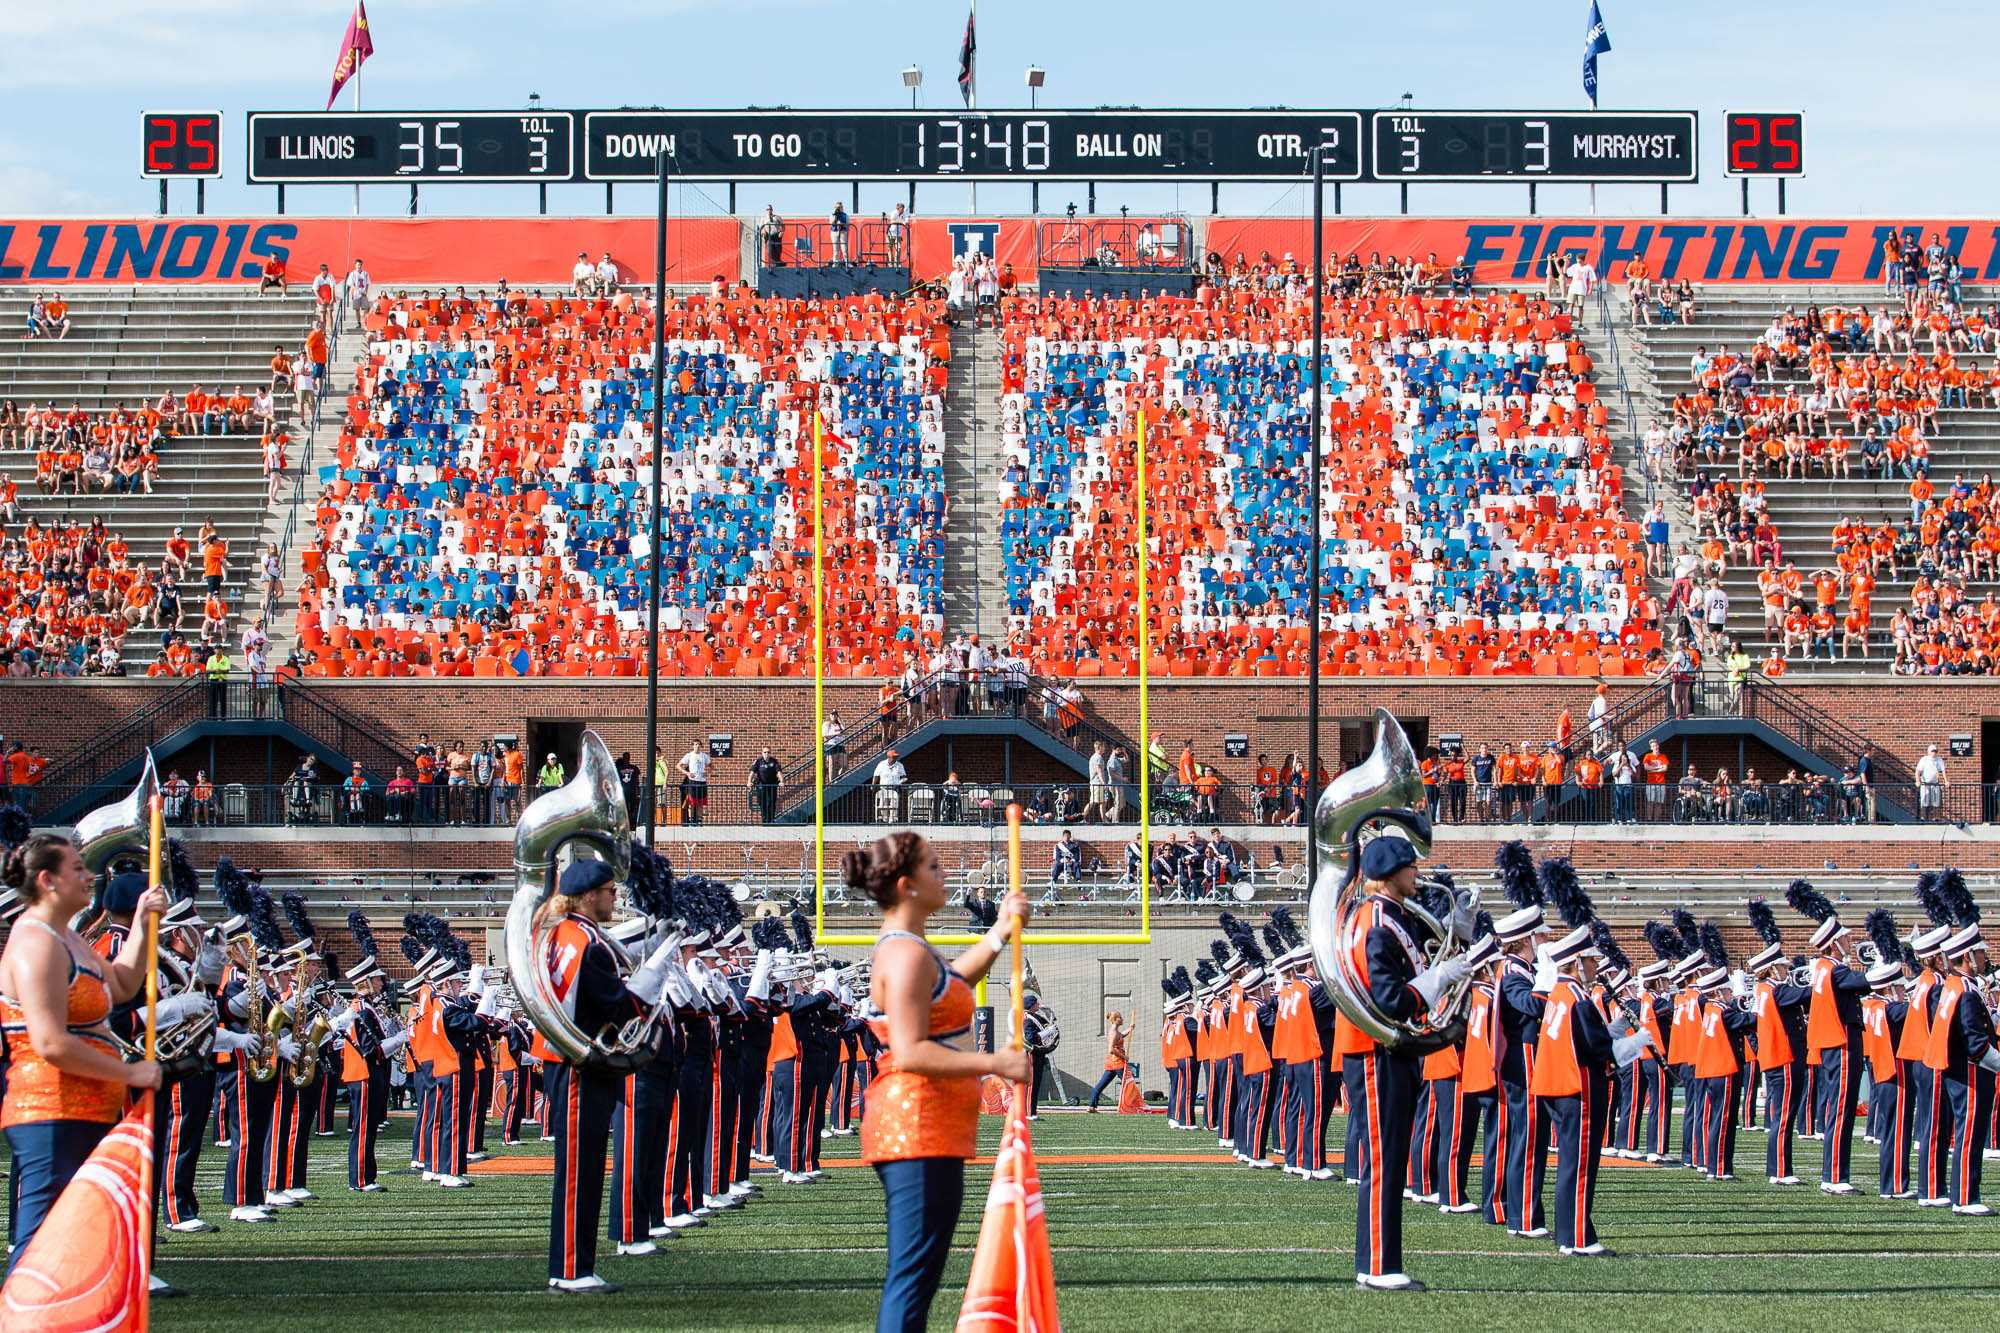 The Block I student section holds up cards spelling Lovie while the band performs at halftime of the football game against Murrary State on Saturday, Sept. 3.